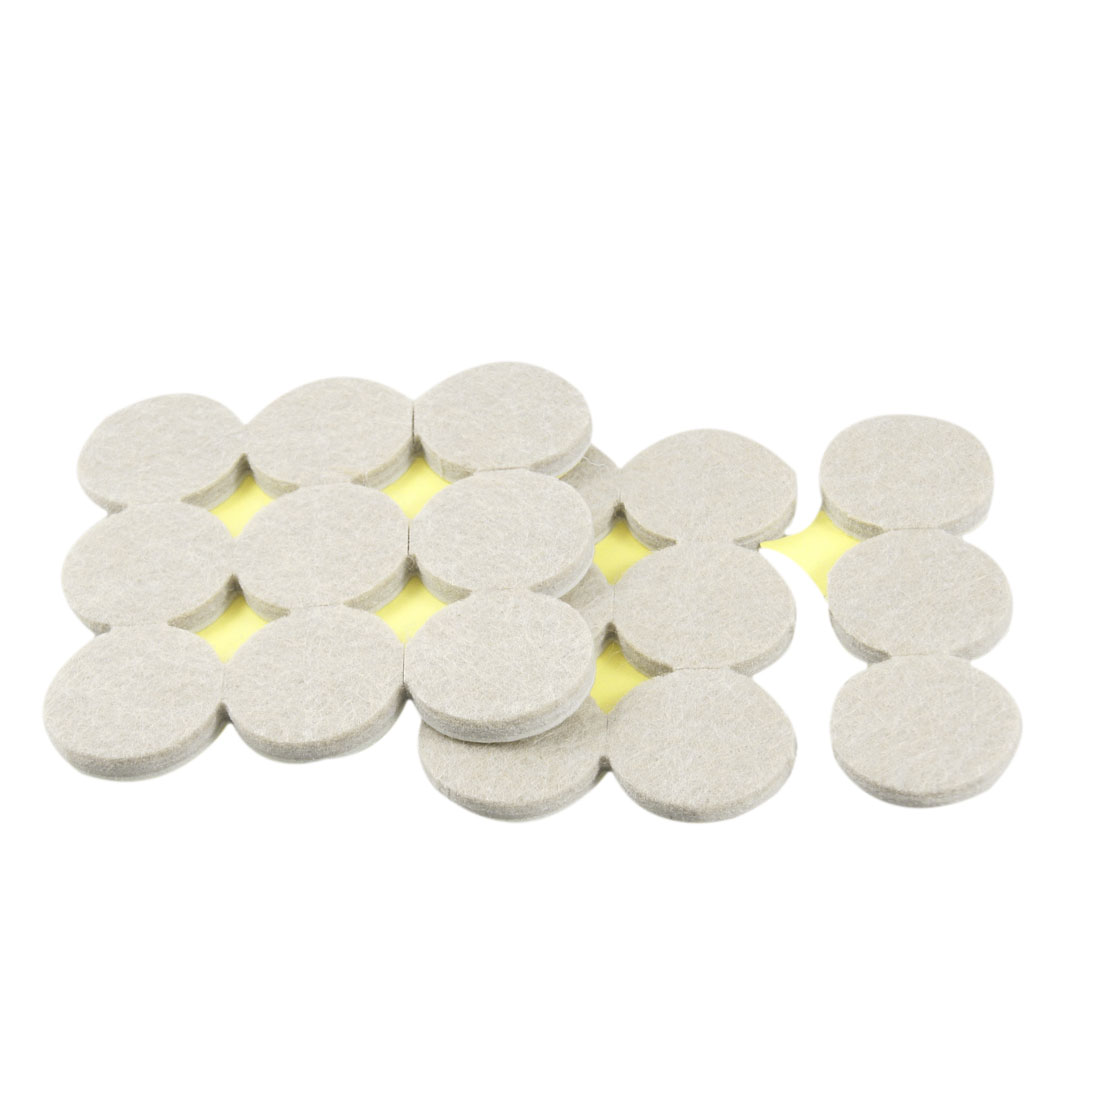 18 Pcs Furniture Round Shape Beige Tables Chairs Protection Pads Cushion